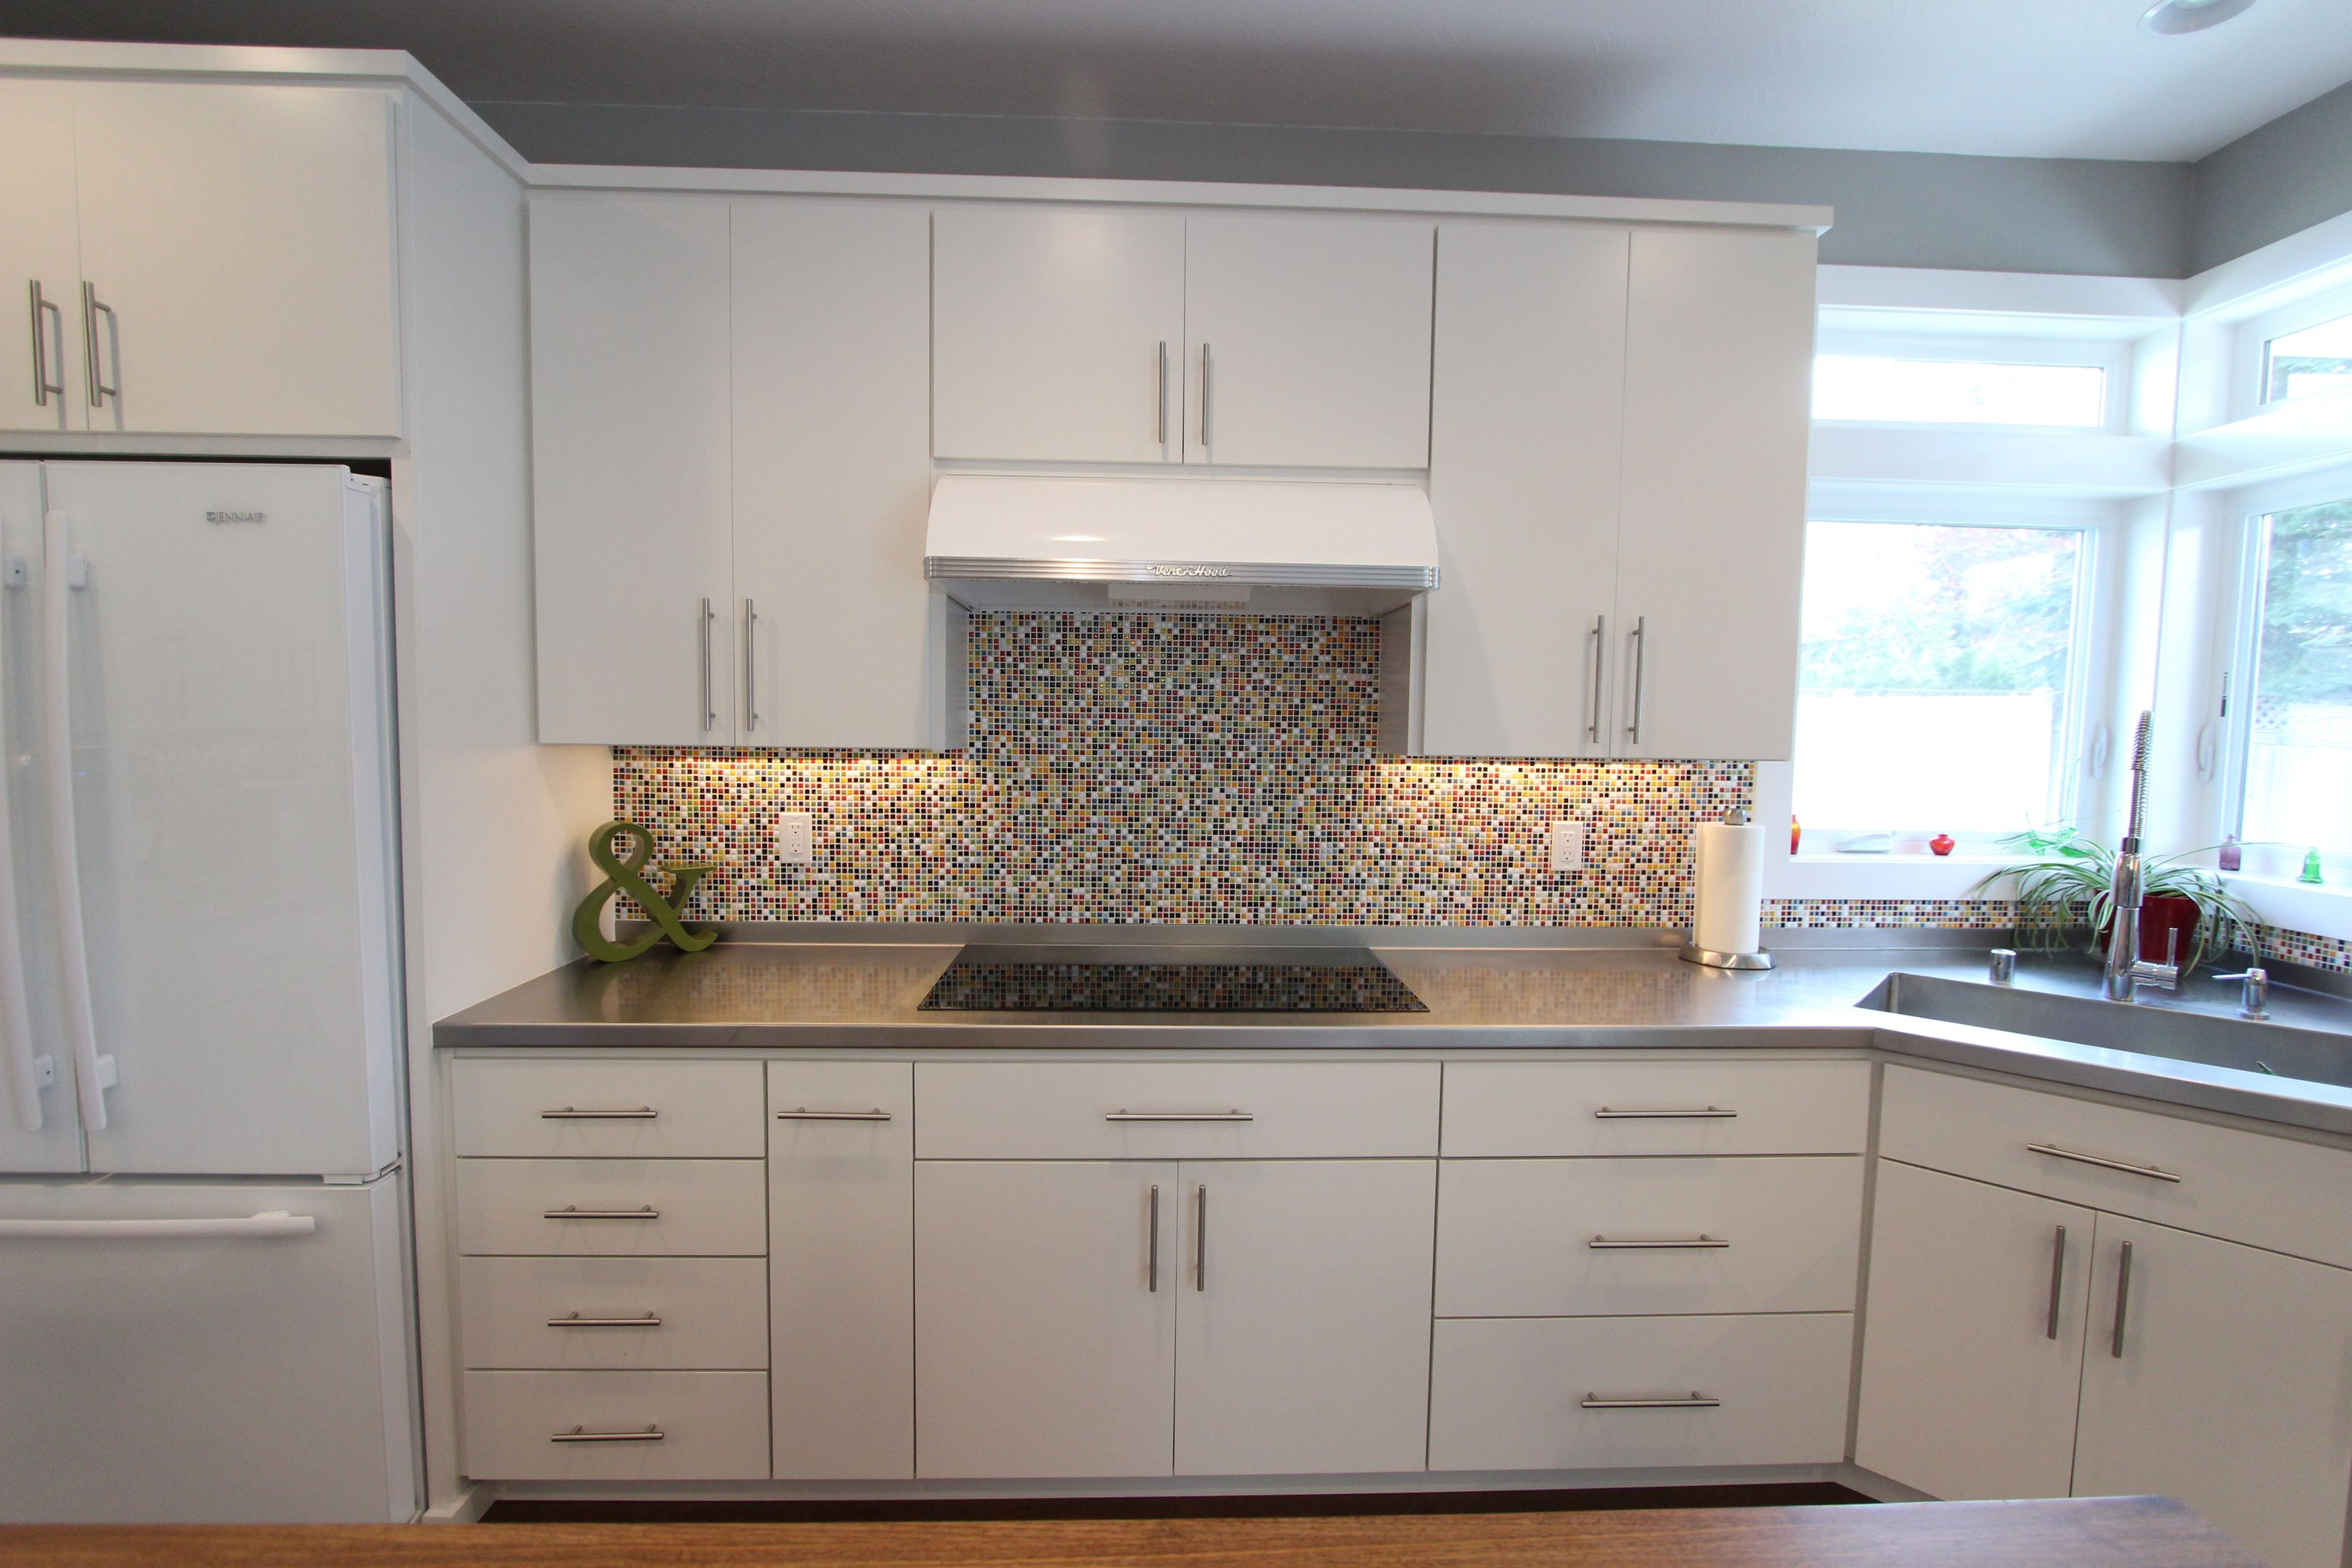 Pin By Terry L On Kitchen Extensions Laminate Kitchen Cabinets Small Kitchen Plans Online Kitchen Cabinets